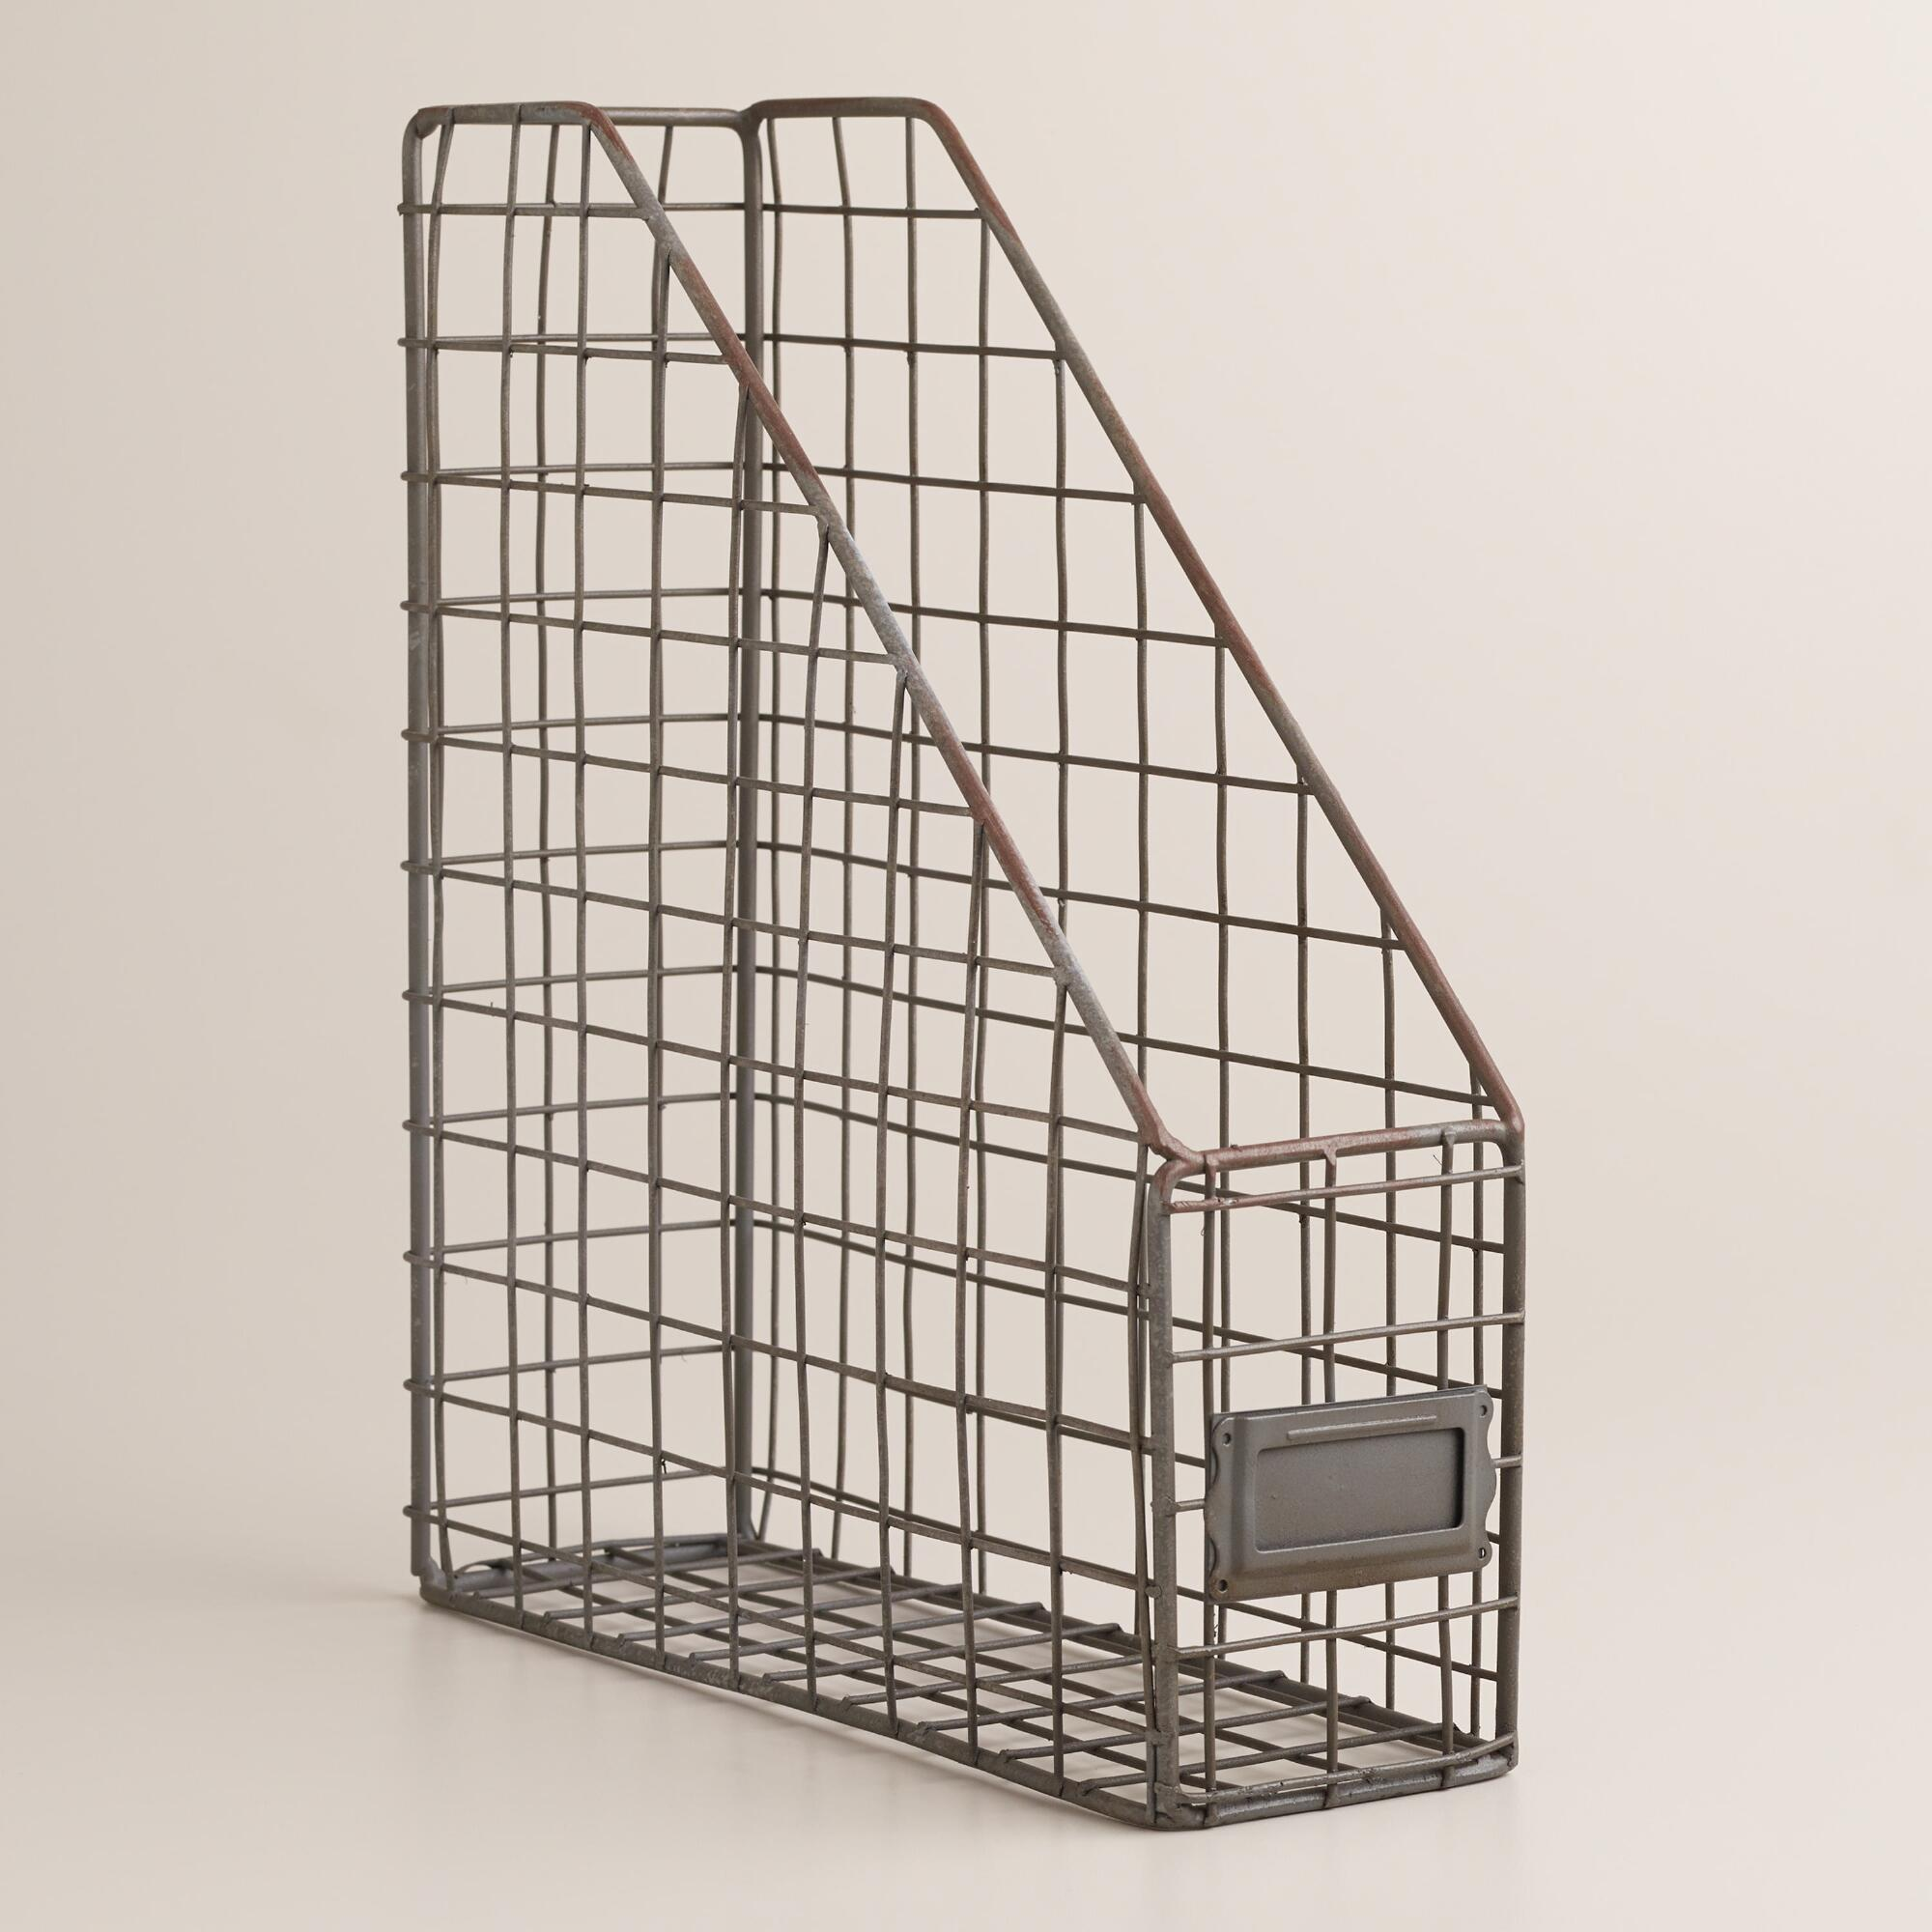 Store your standard-sized magazines, newspapers and periodicals in an attractive, convenient way with the Spectrum Wire Magazine Rack. The rack has a compact design with an open top for easy scanning of contents within/5(12).